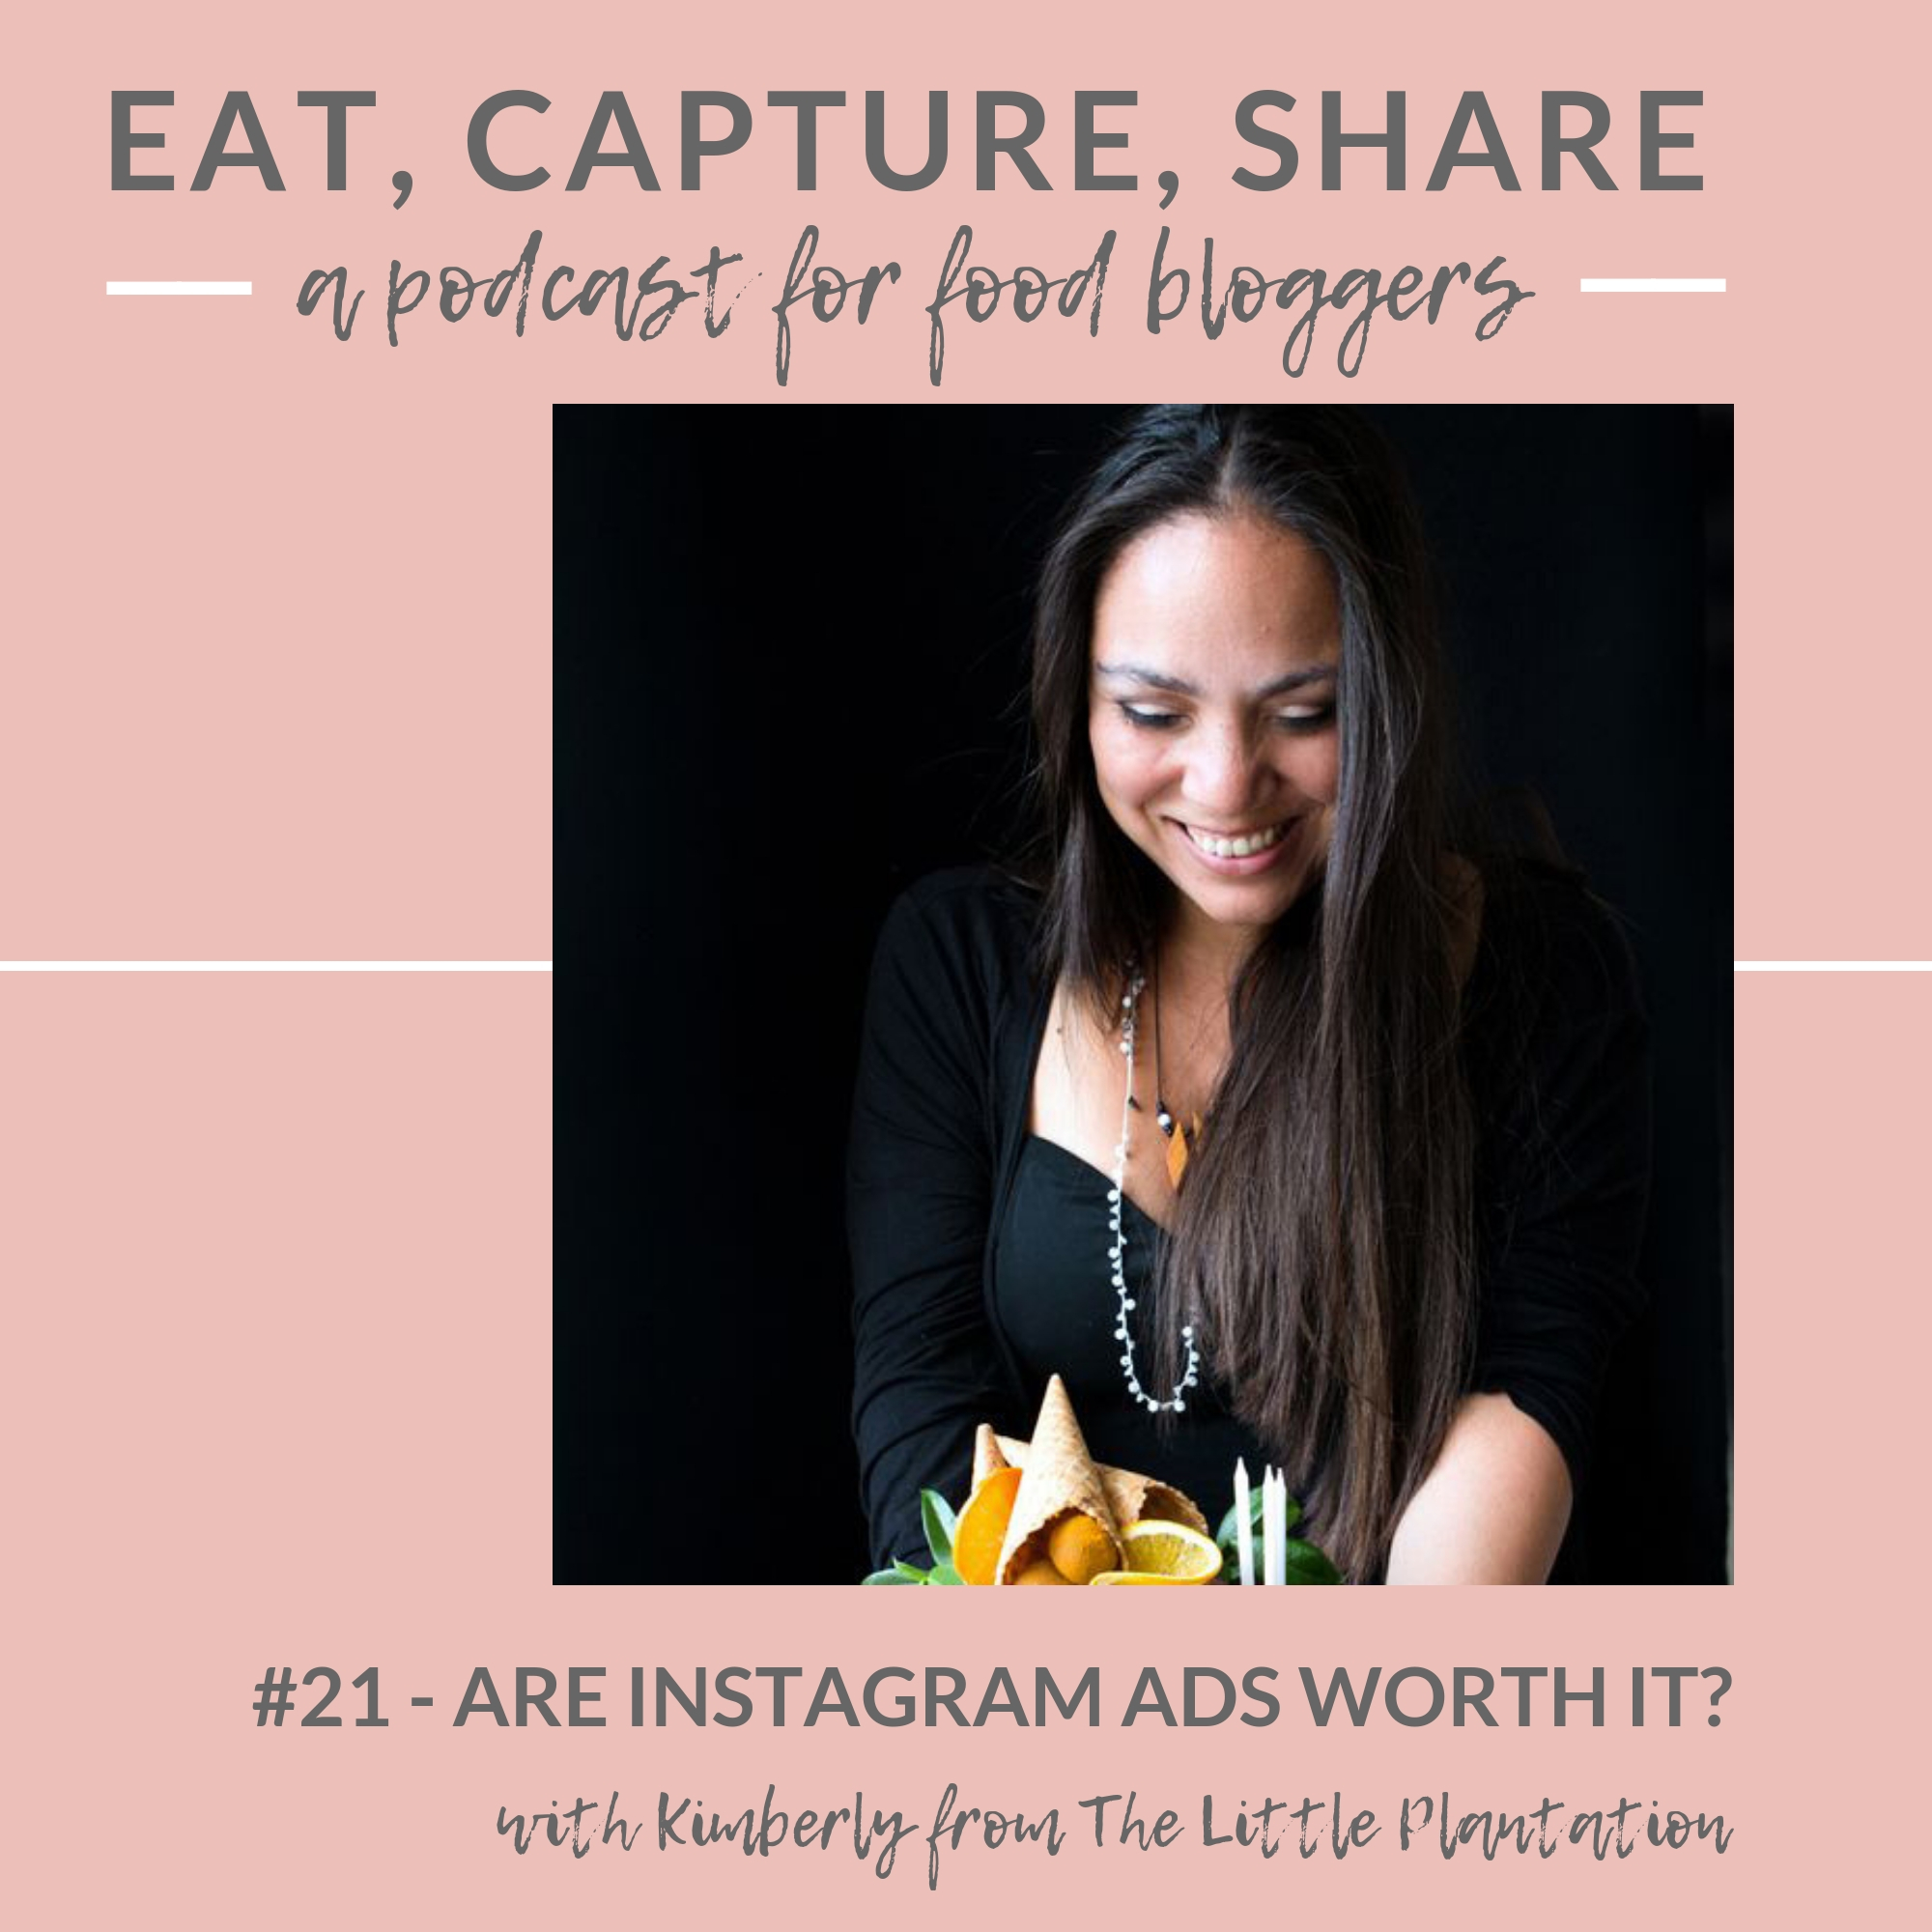 Are instagram ads worth it for food bloggers and creative business owners? - Podcast Episode with The Little Plantation